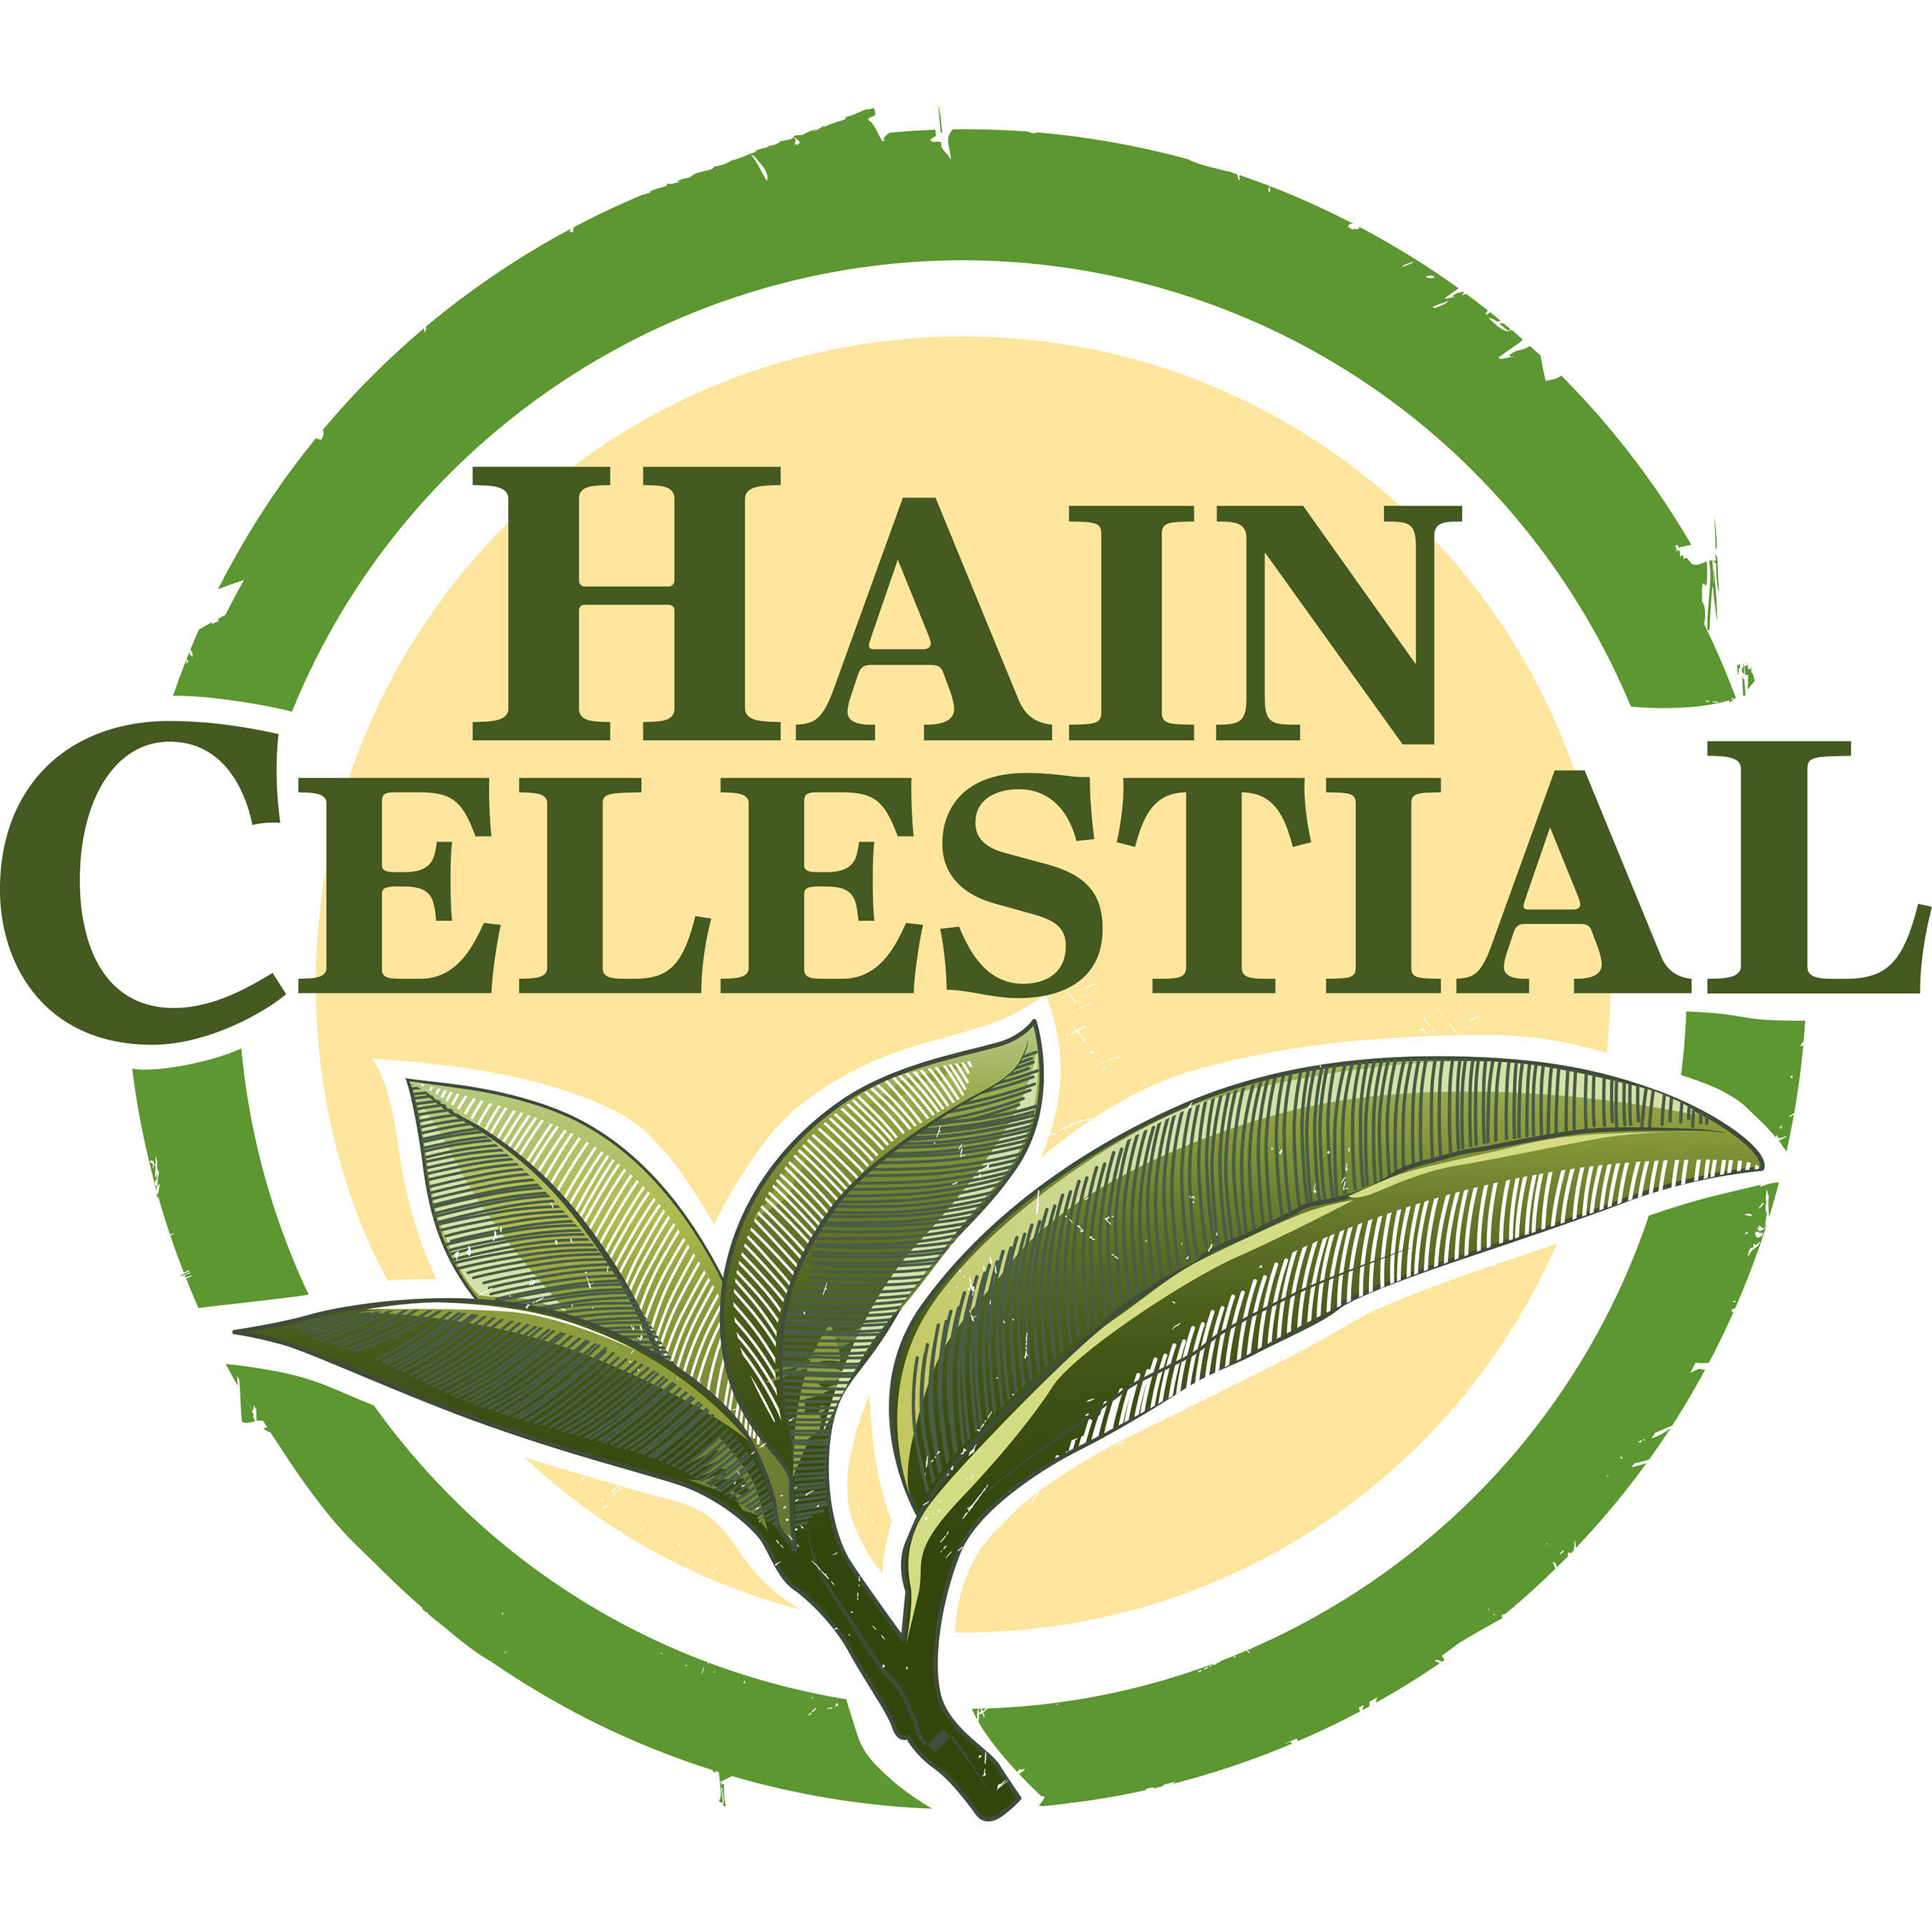 hain celestial sells serious stock new hope network rh newhope com  celestial being logo png